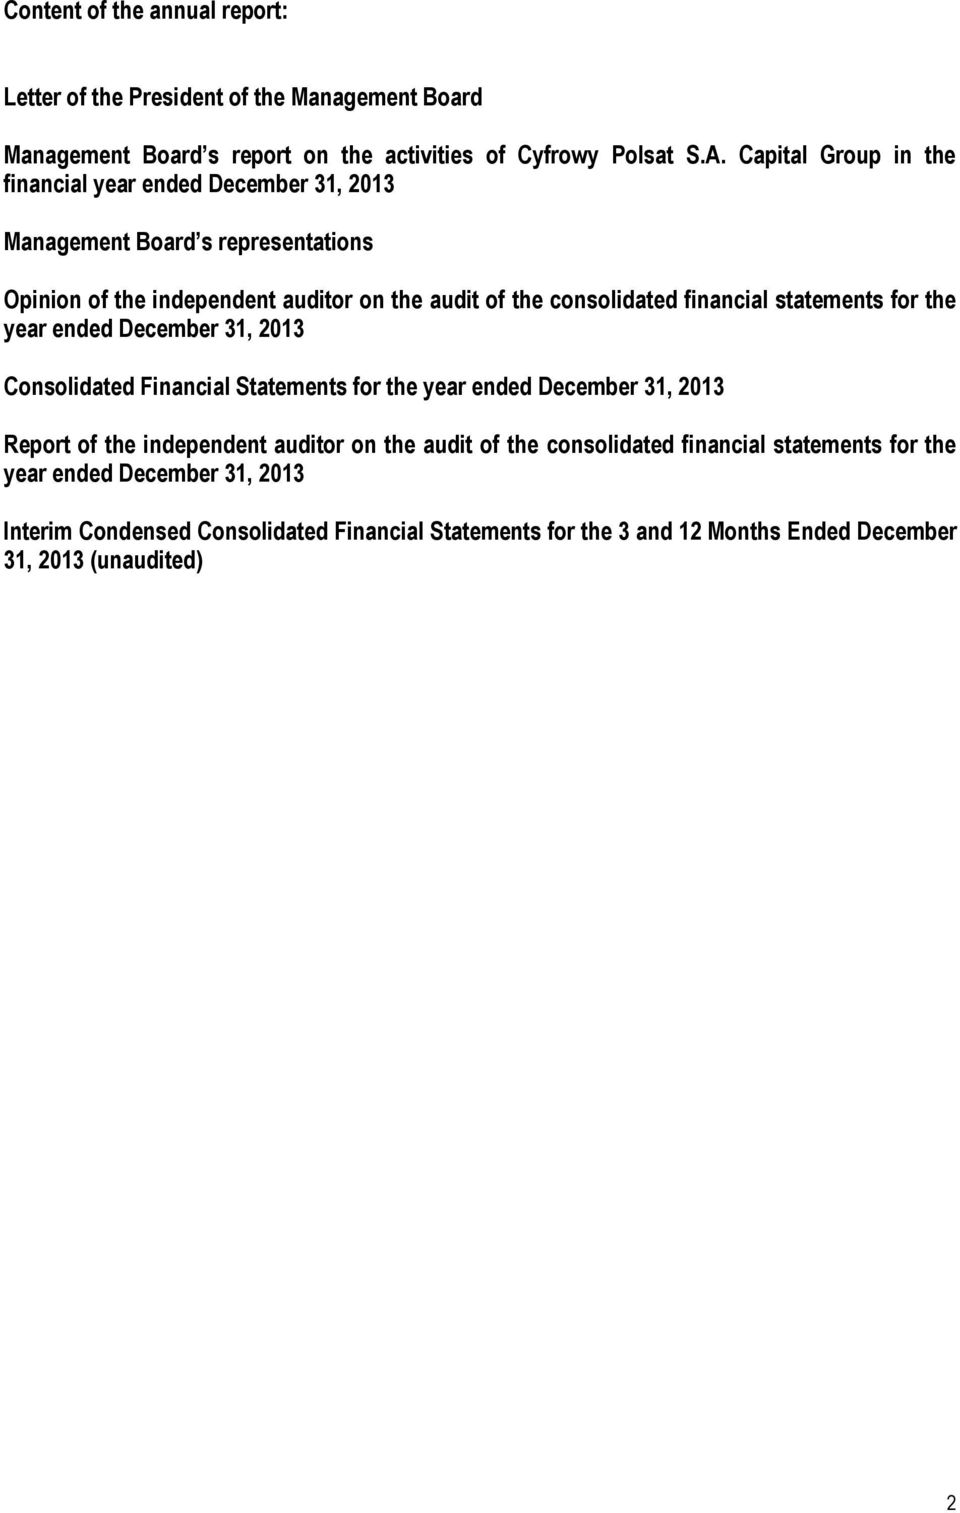 financial statements for the year ended December 31, 2013 Consolidated Financial Statements for the year ended December 31, 2013 Report of the independent auditor on